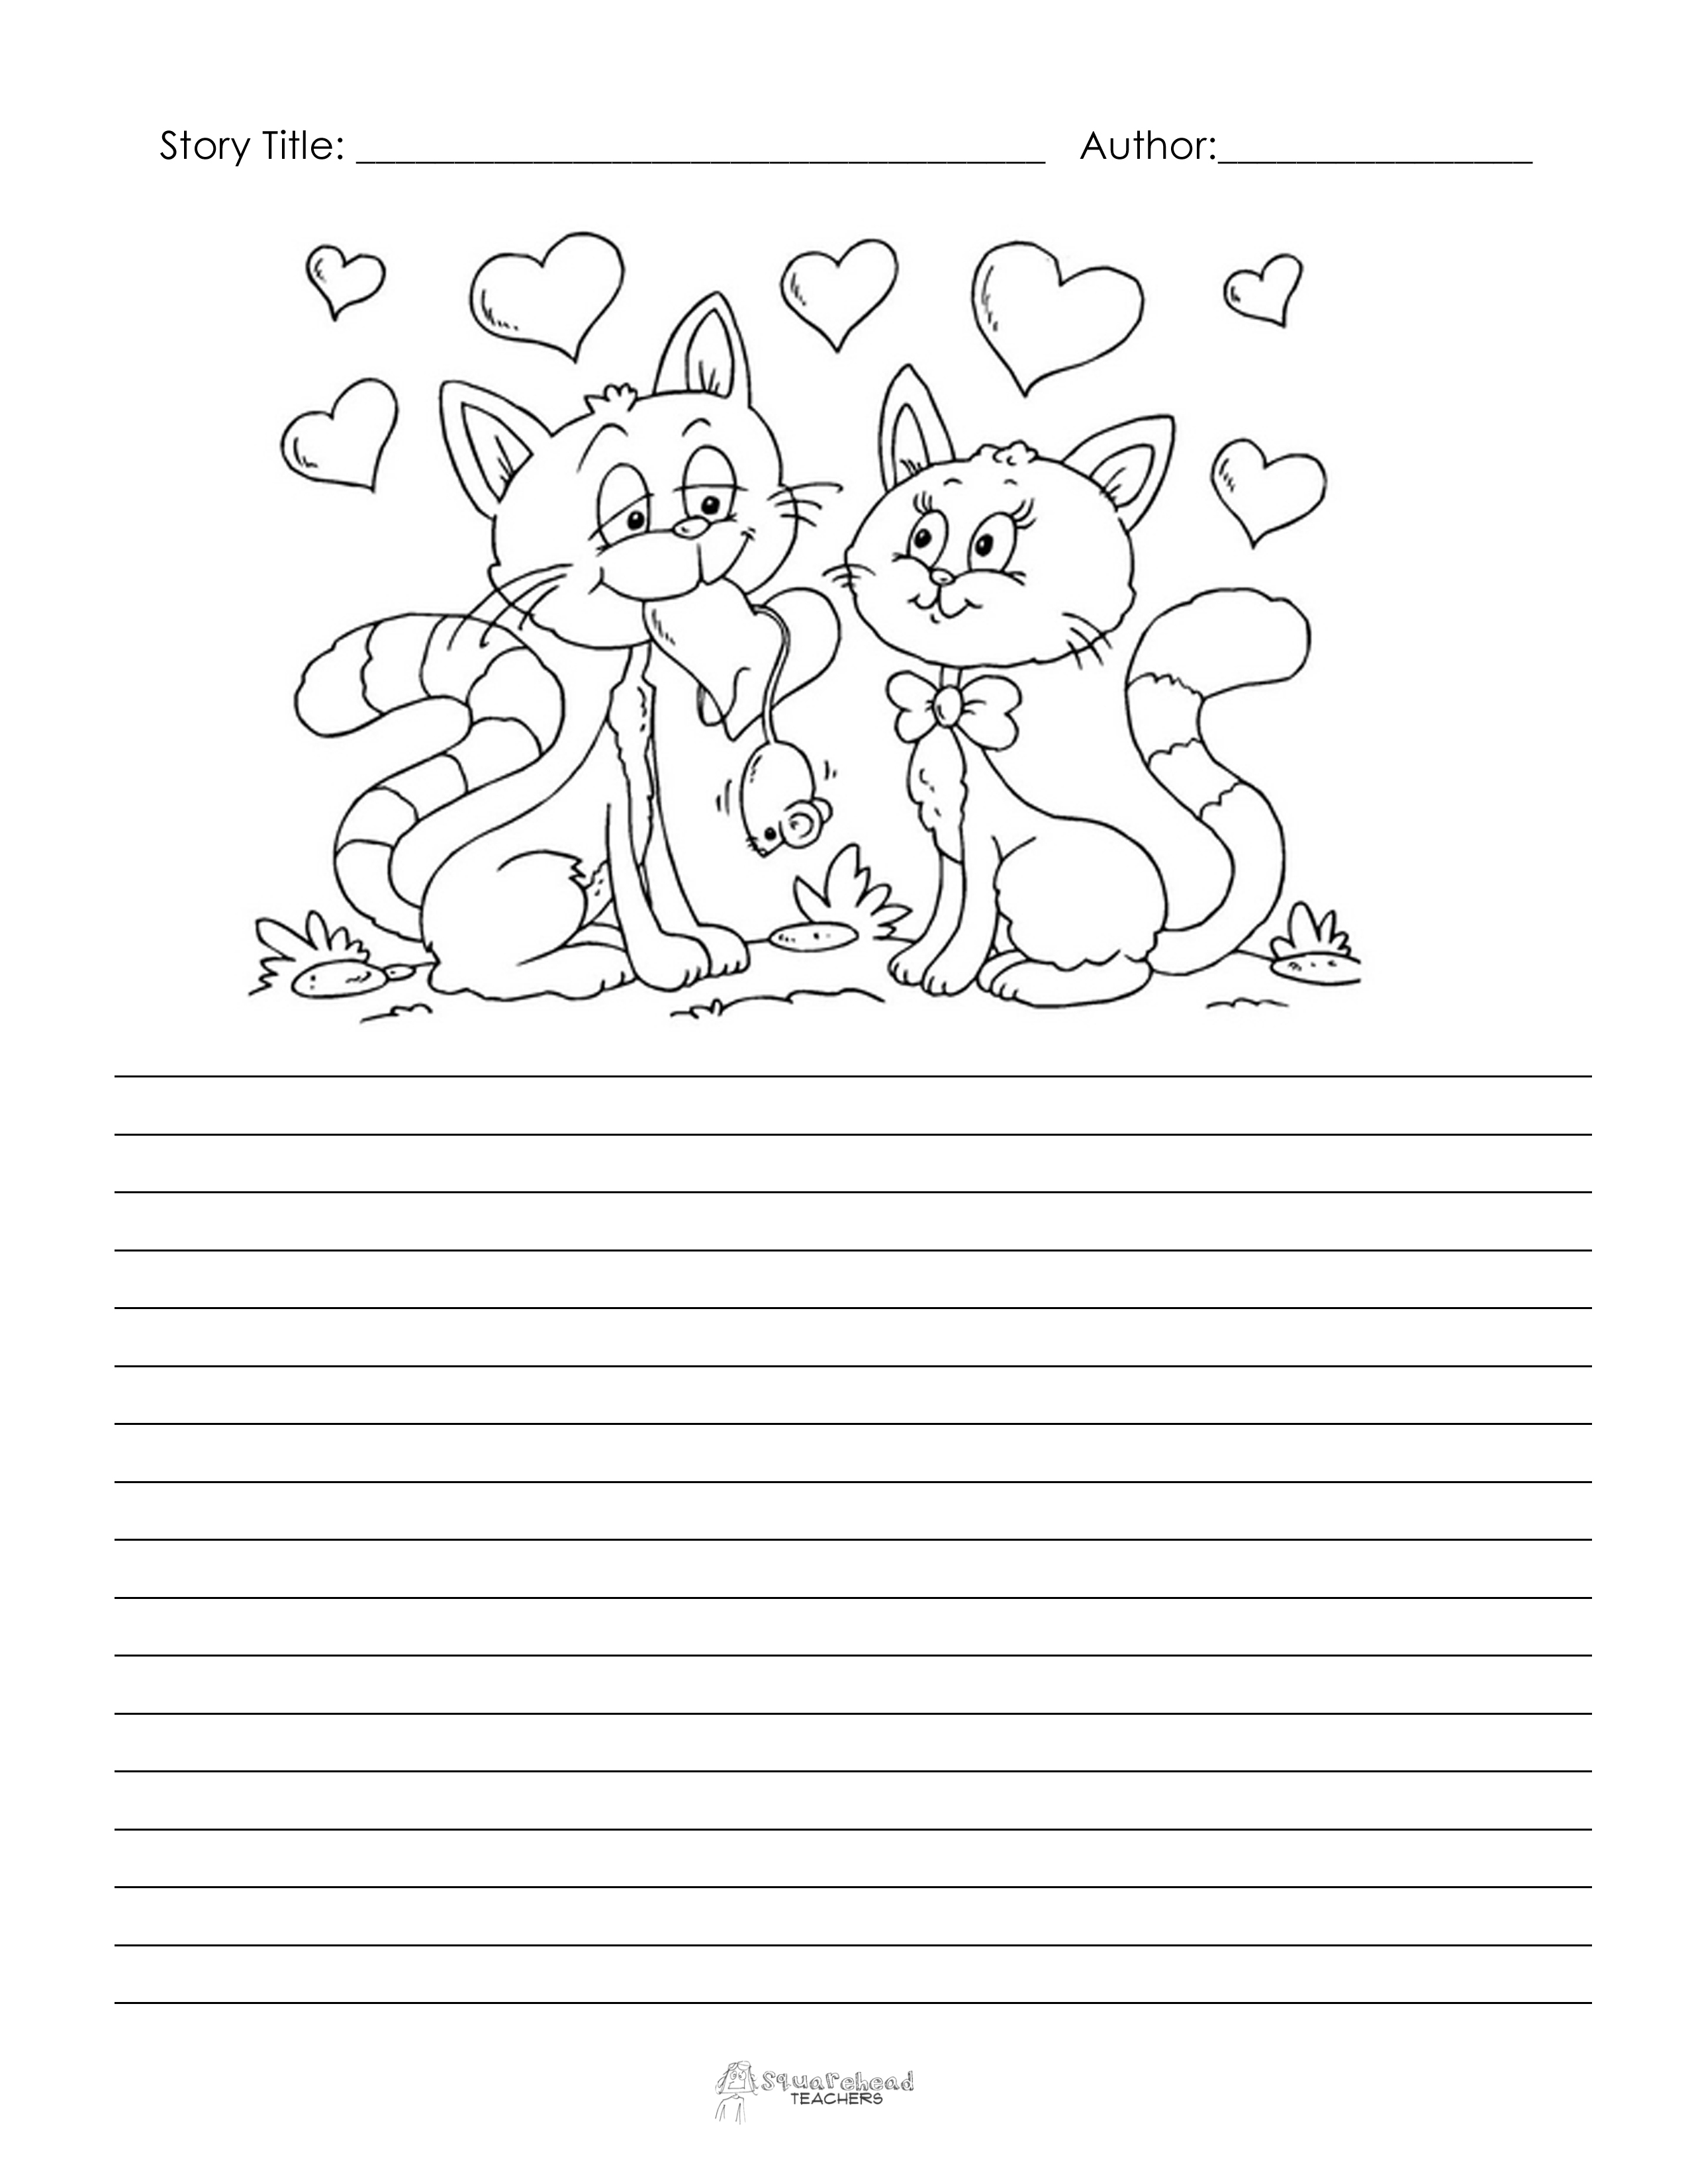 the creative writing valentines day at its best Creative writing creative writing  making valentine's day special  your valentines are wonderful but its early in the day so i am off to do some crafting.